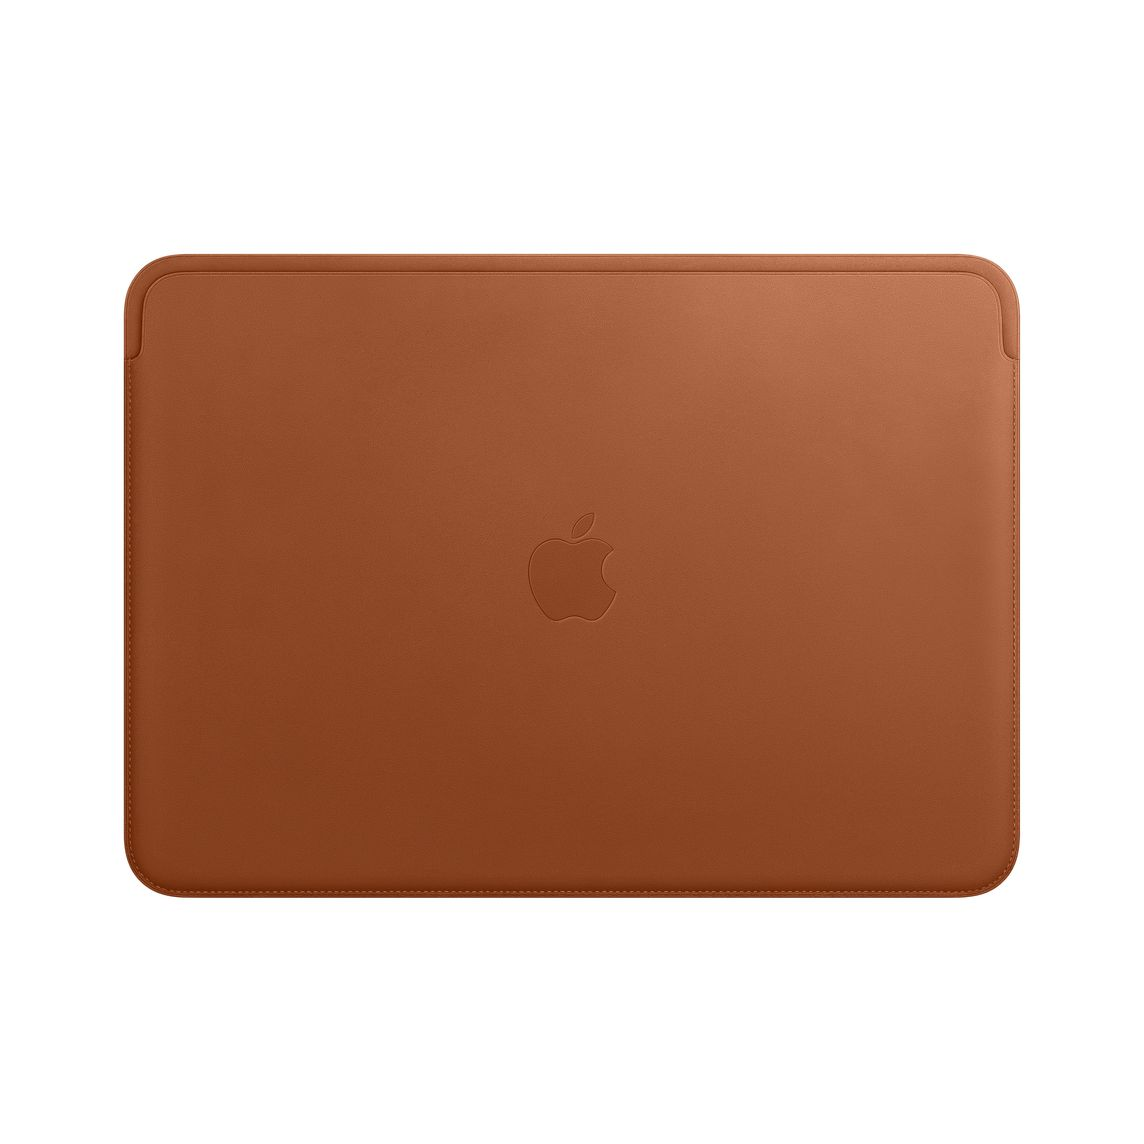 new product 580bd a5936 Leather Sleeve for 13-inch MacBook Air and MacBook Pro - Saddle Brown